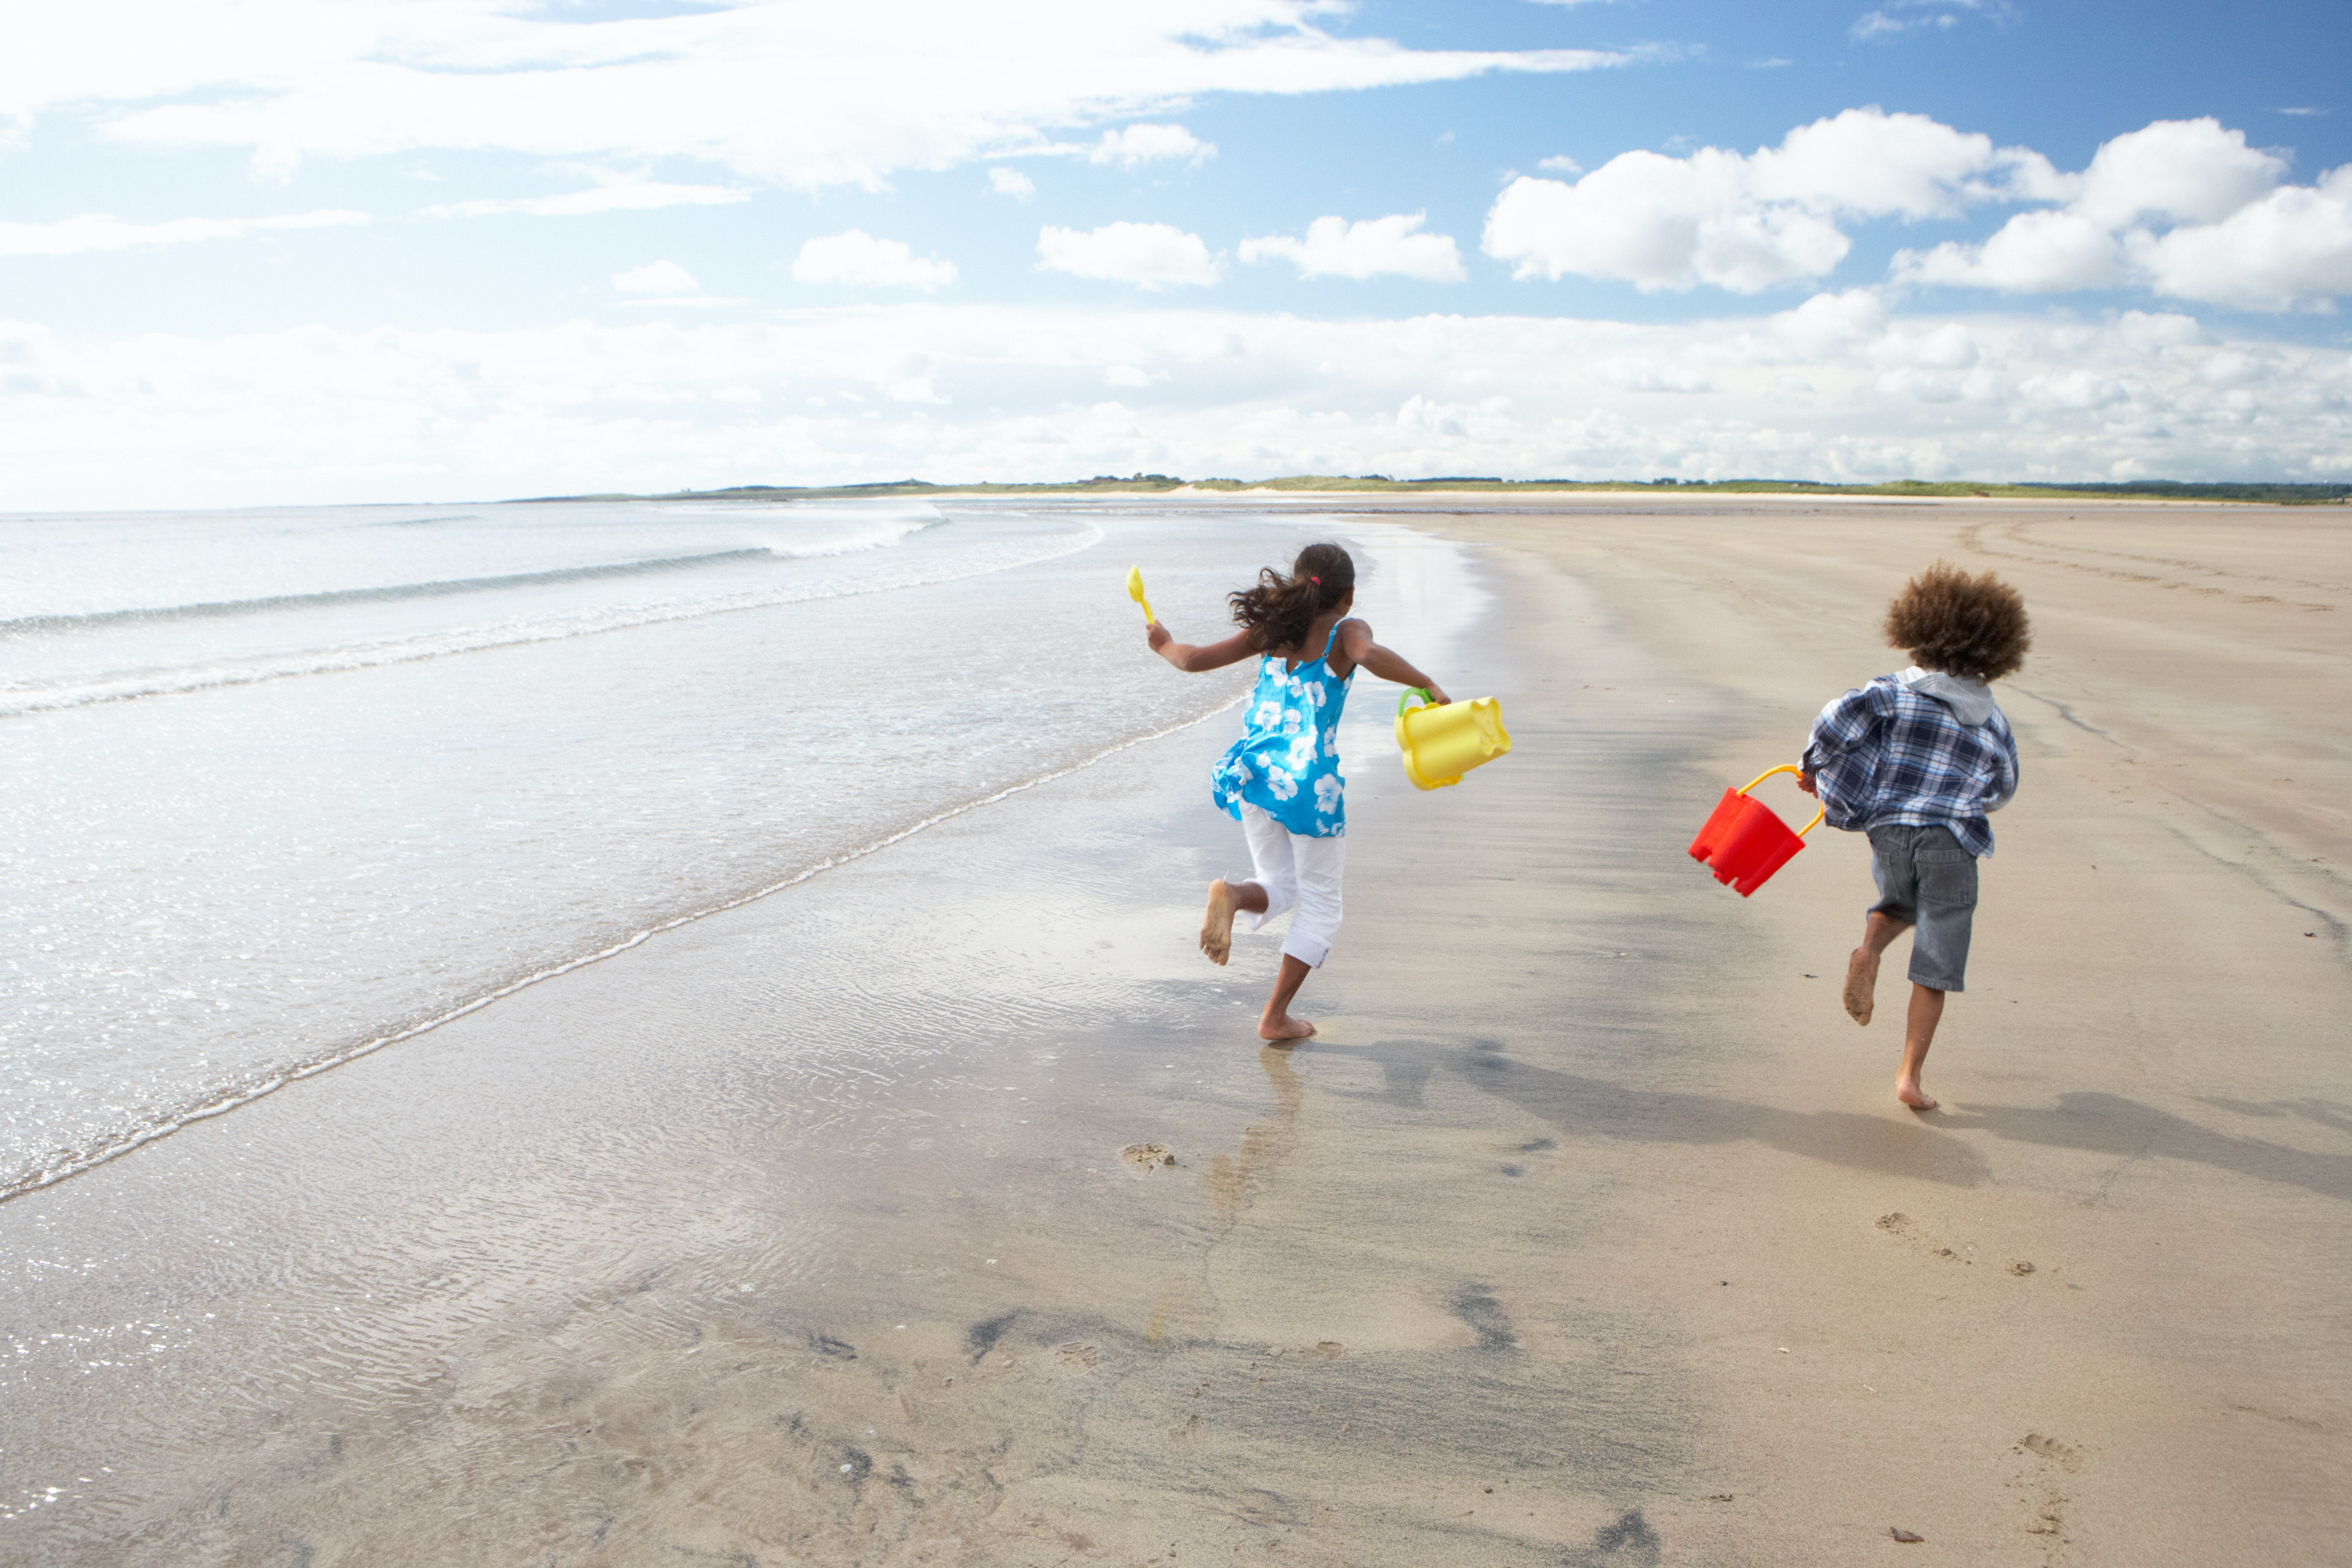 photo of two children running on a beach